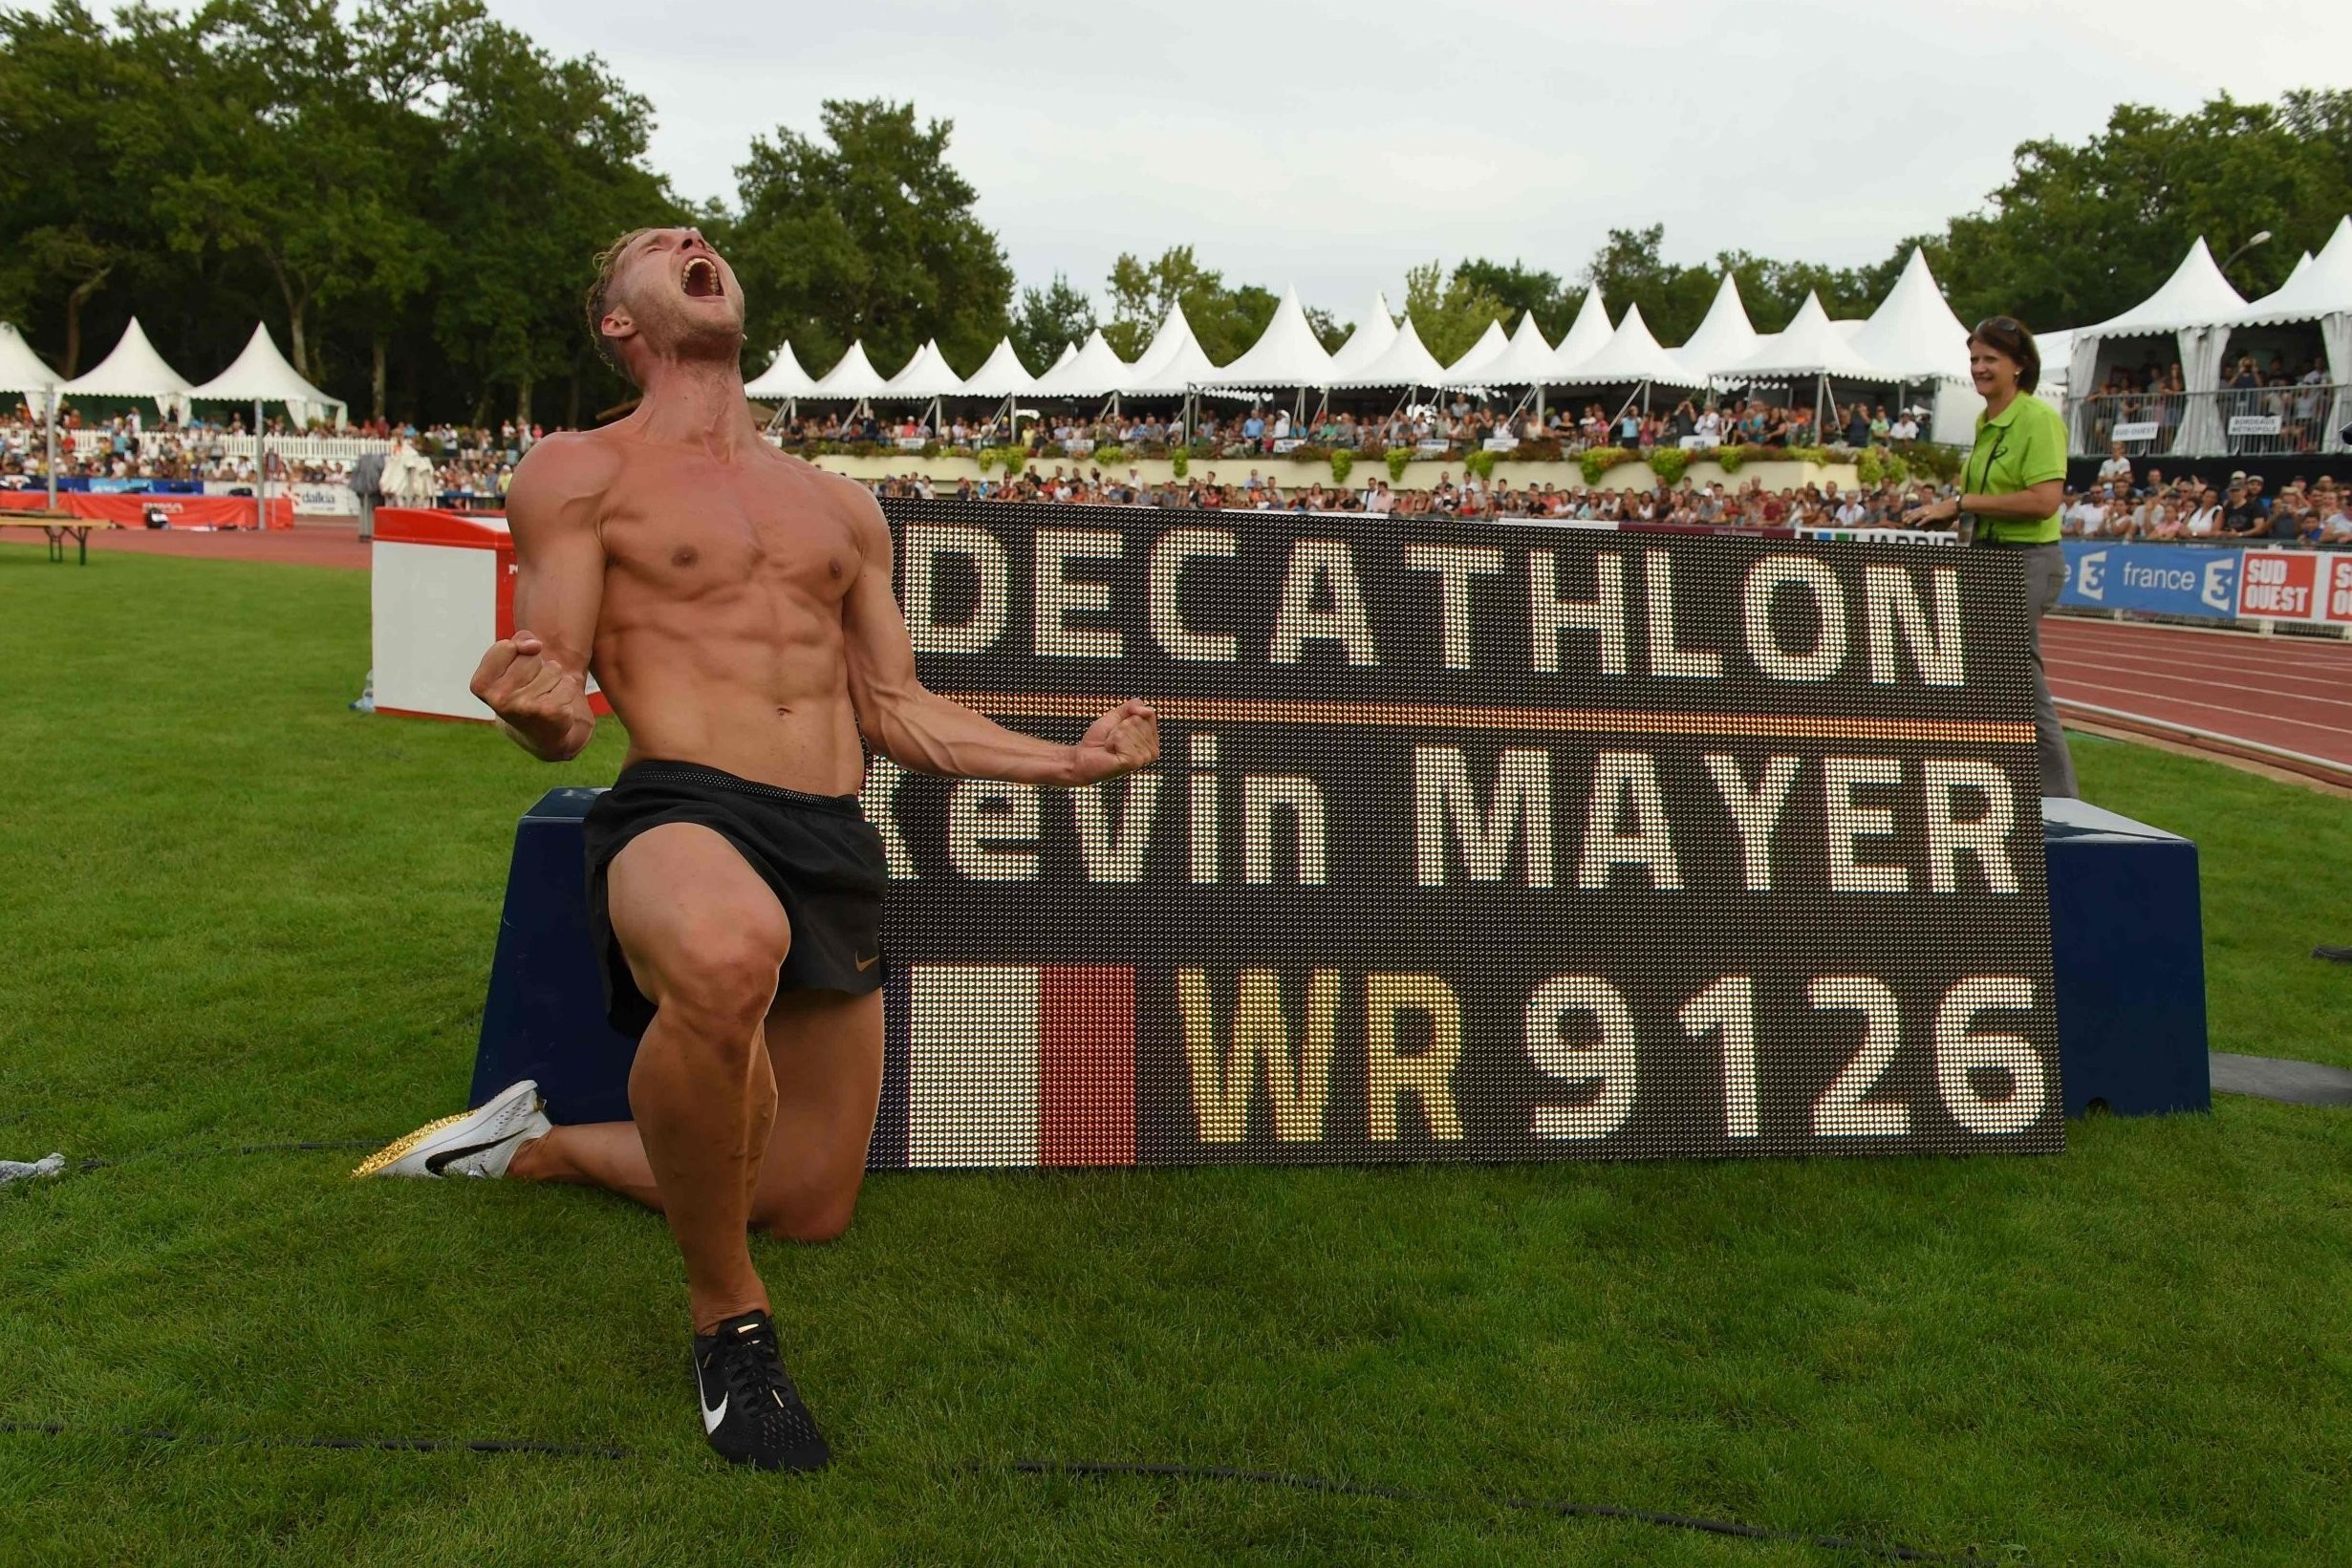 Two world records were set Sunday September 16, the Marathon and the Decathlon